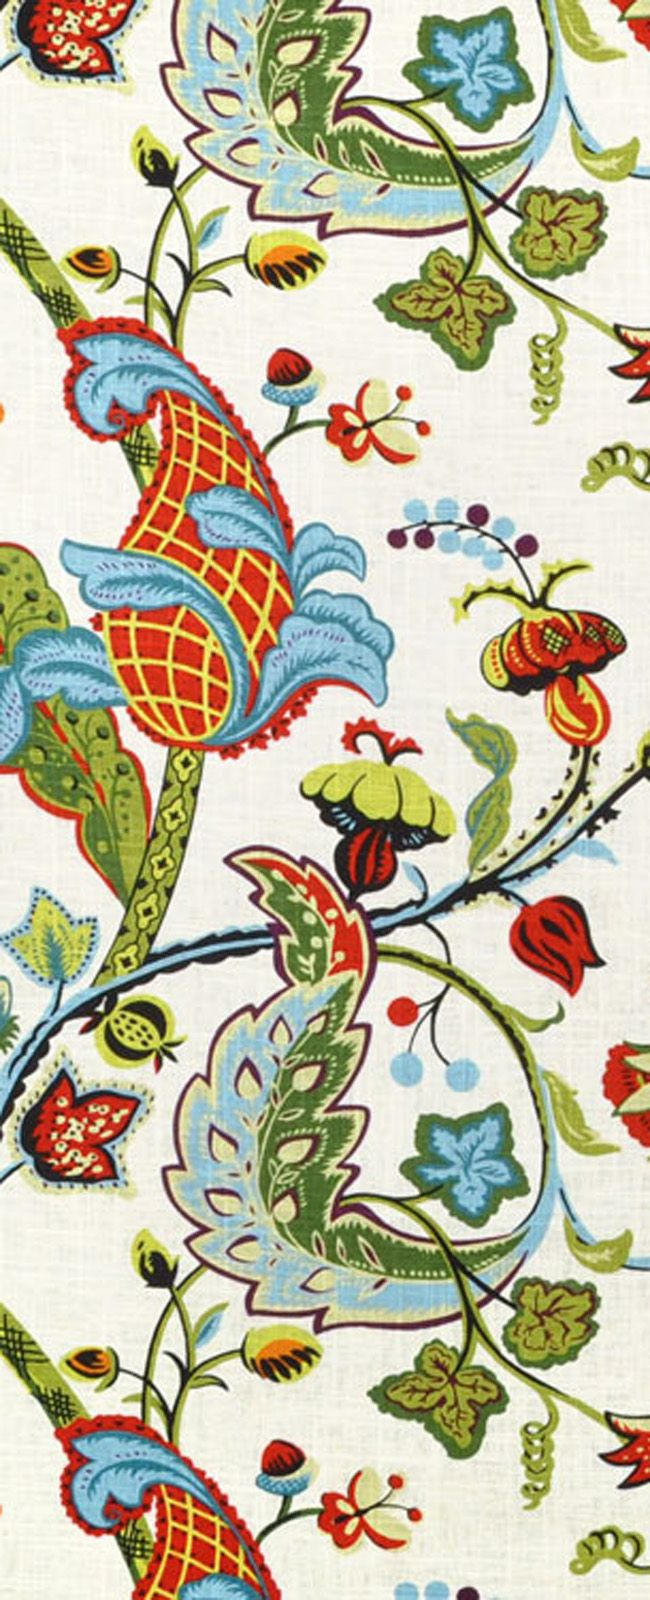 Covington Wilmington Multi Fabric for red, blue, yellow and green room decor or drapes.